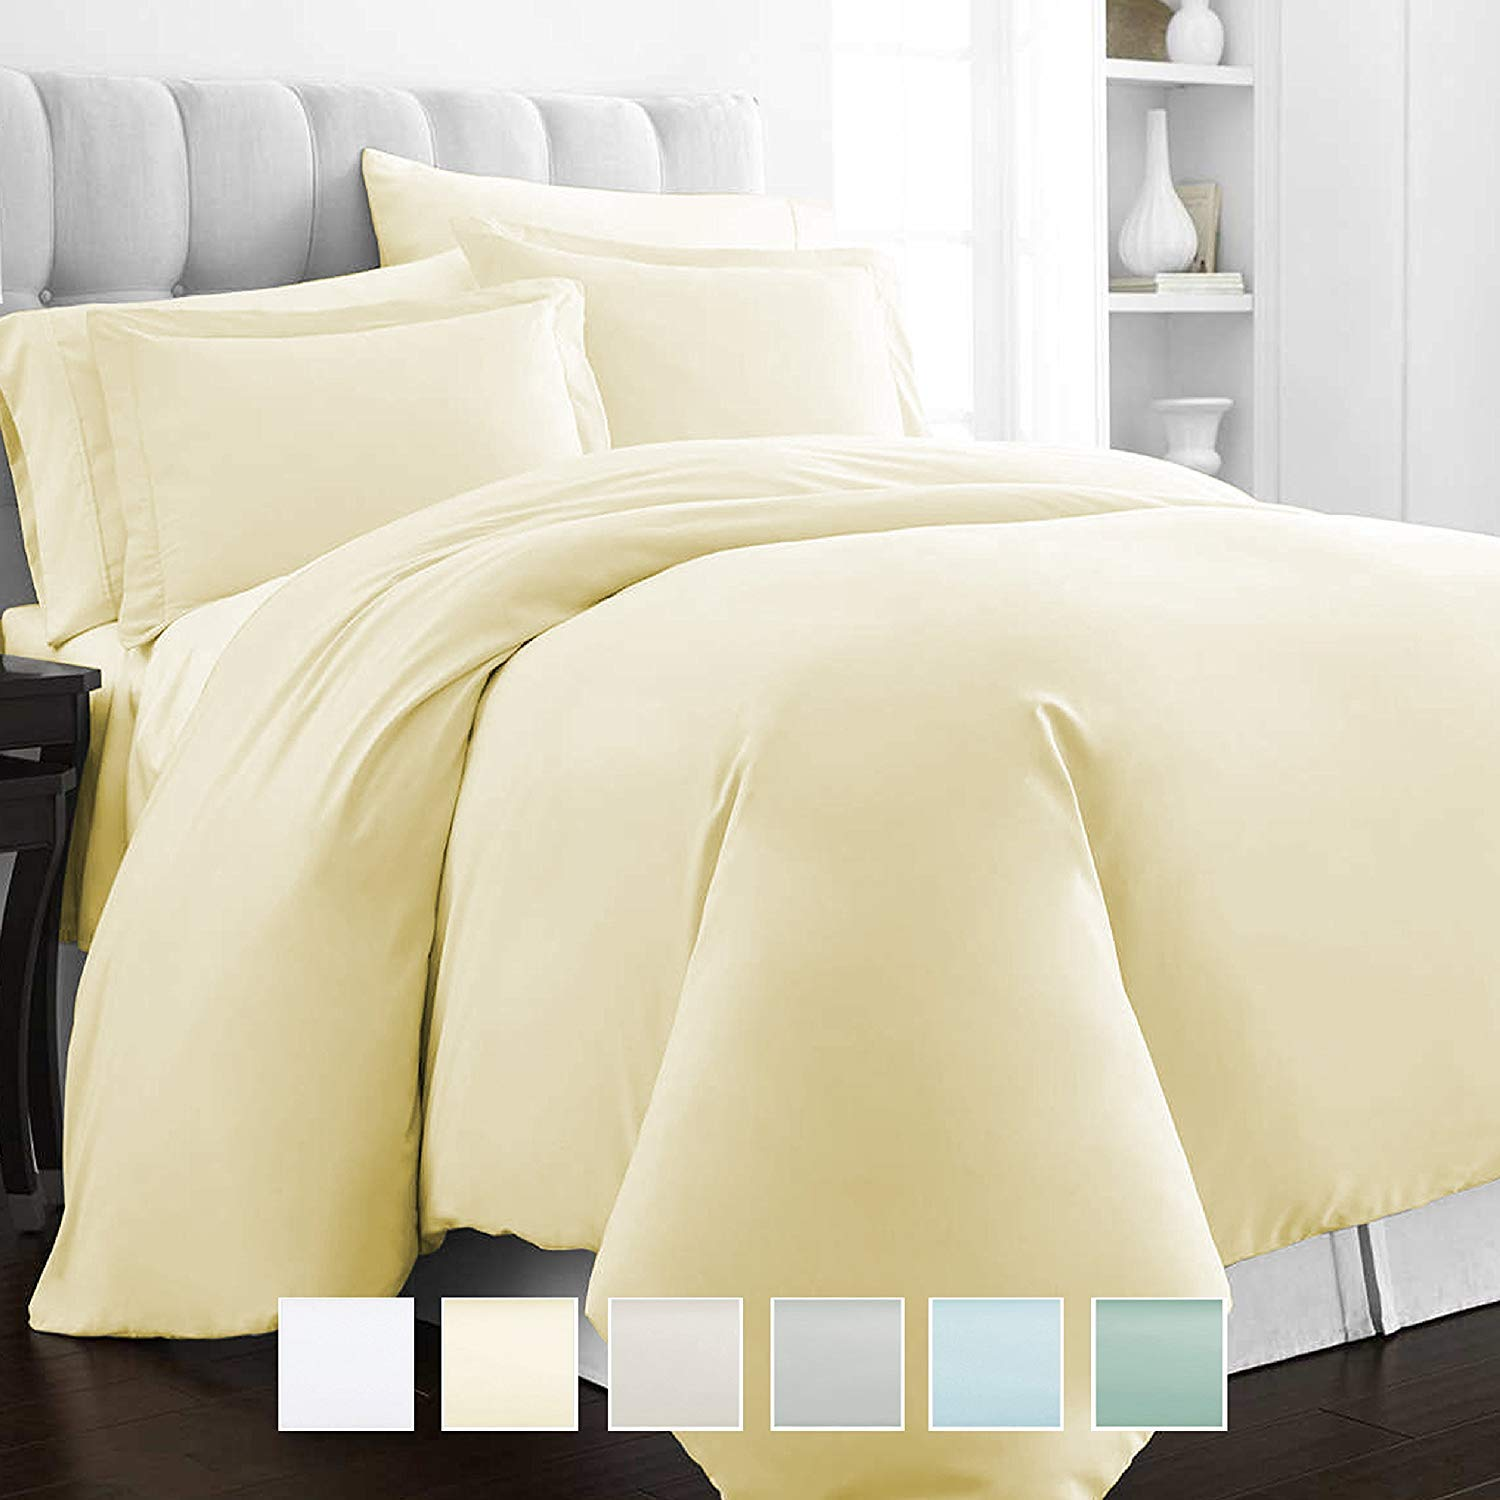 Precious Star Linen Hotel Quality 800 Thread Count Egyptian Cotton 3pc Duvet Cover Set Zipper Closer Oversized Super King Size (120'' x 98'') with Corner Ties (Ivory Solid)